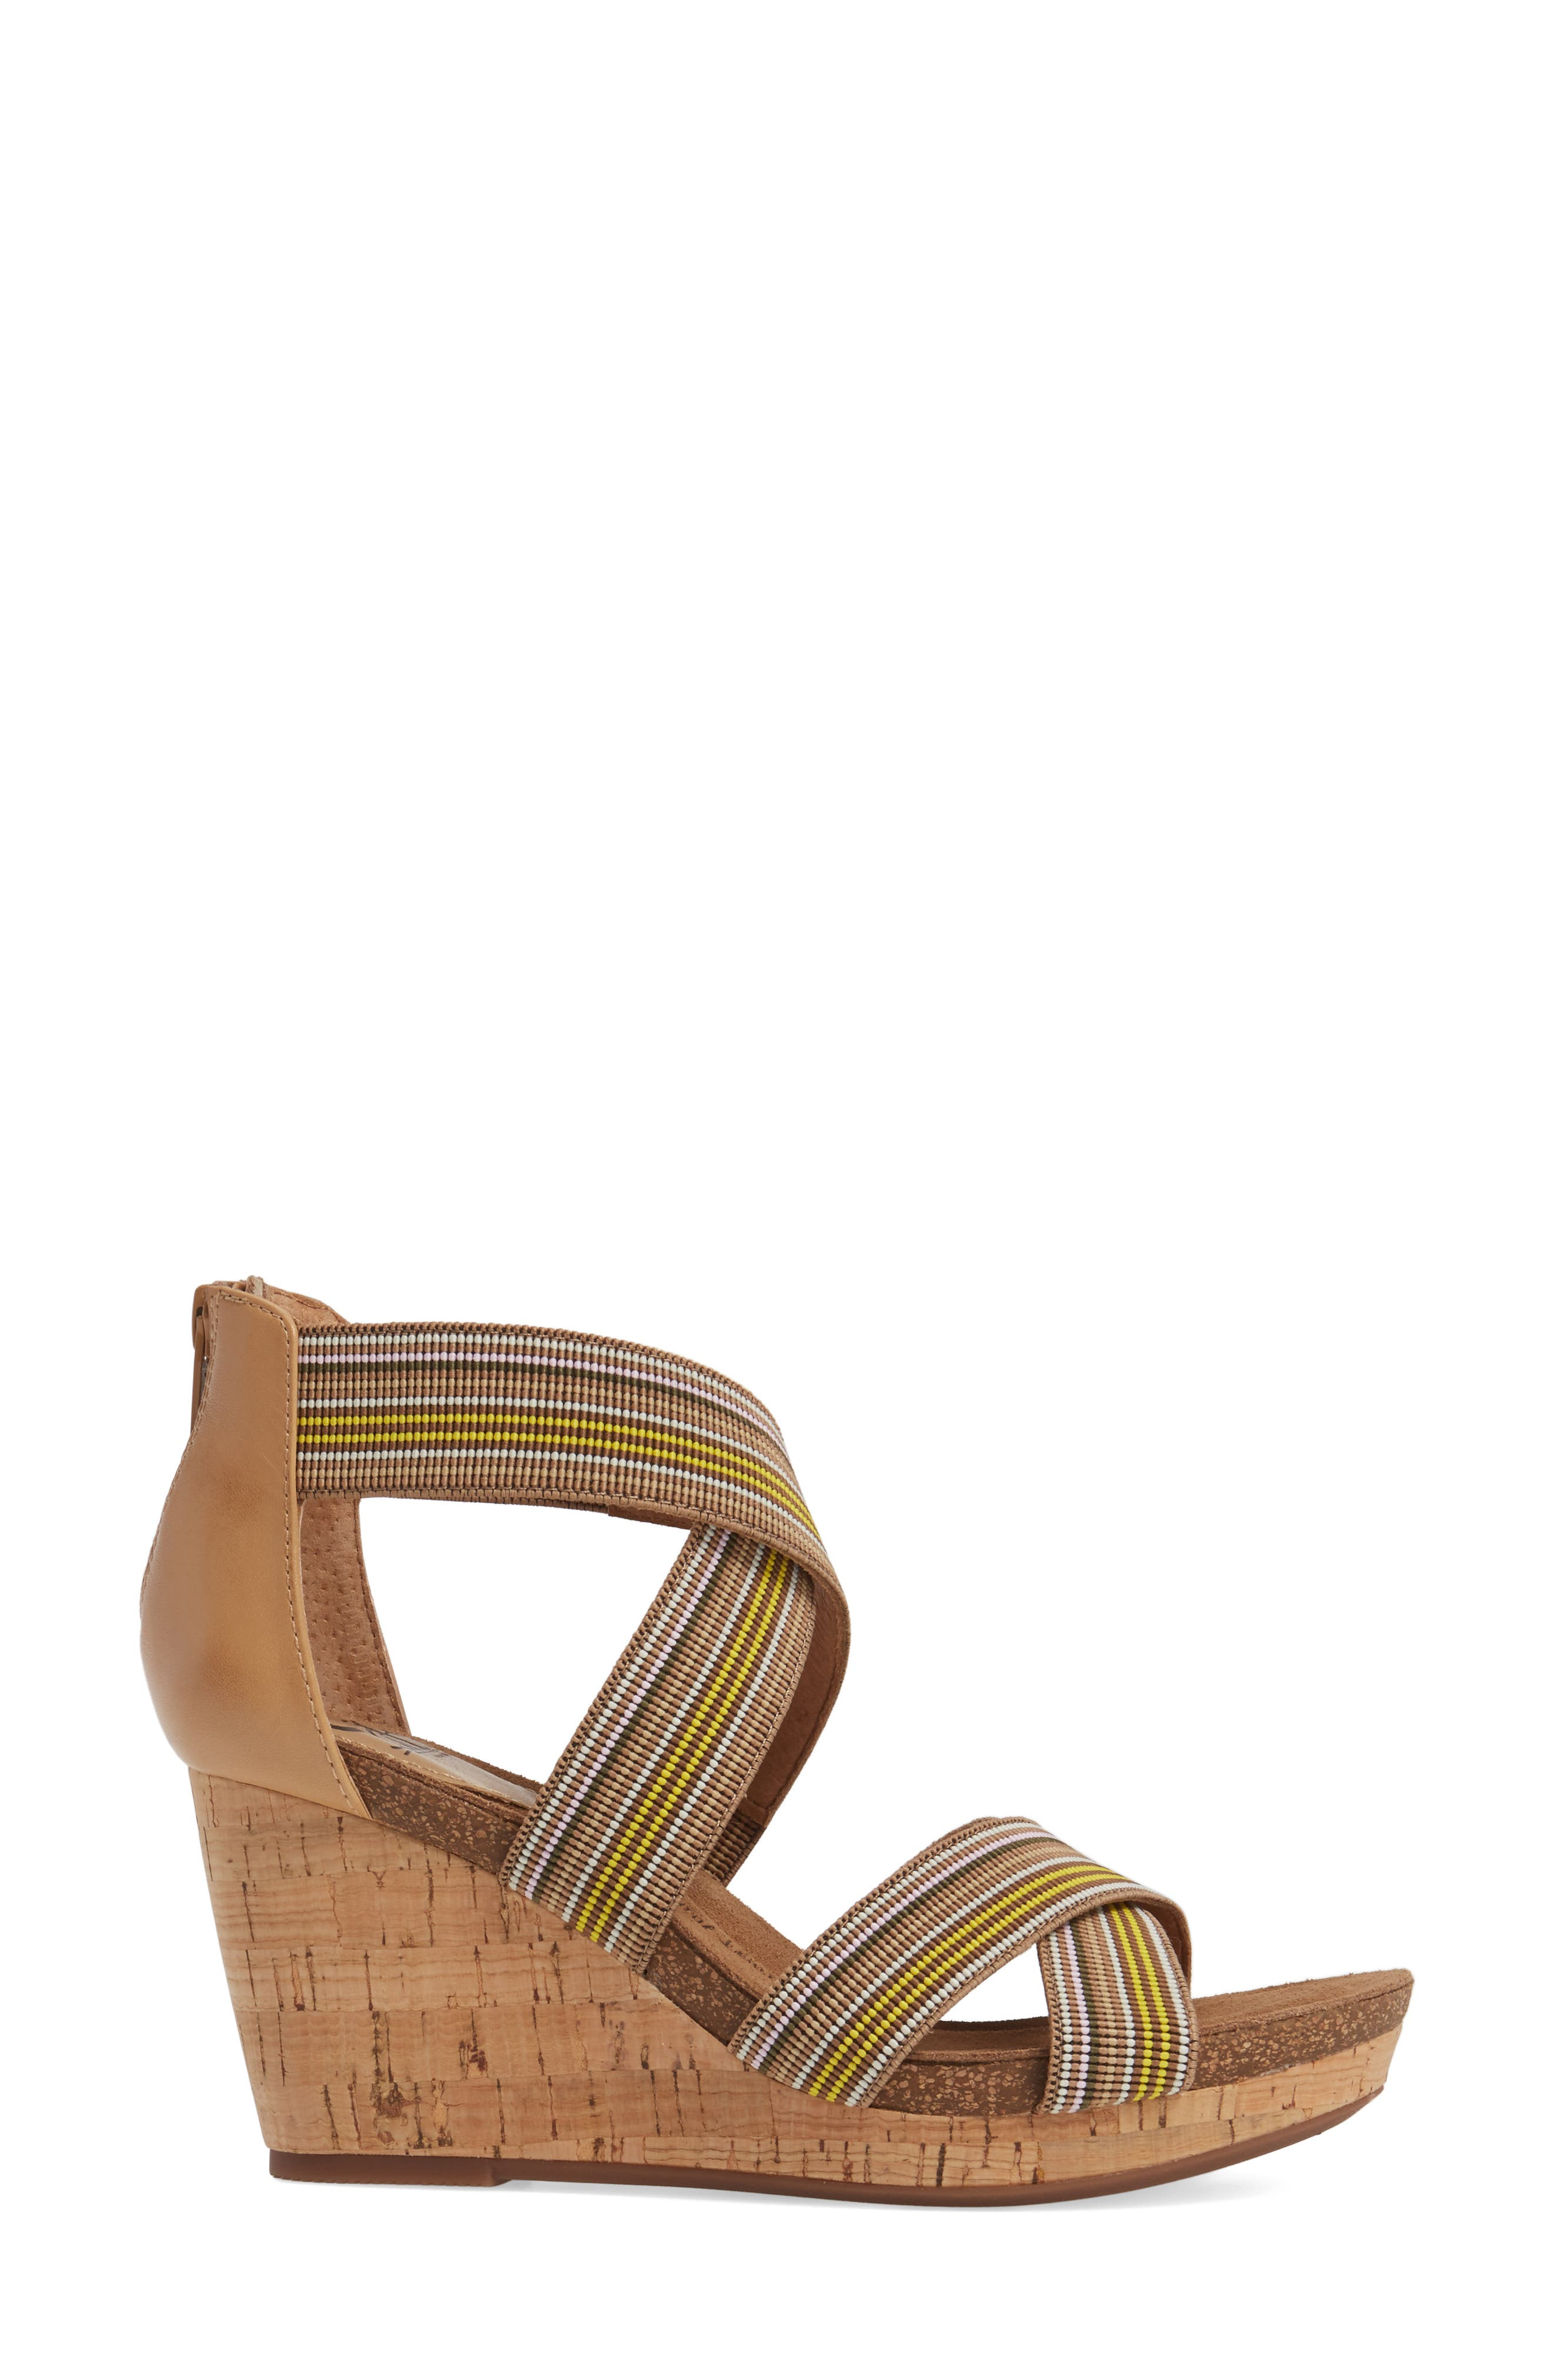 Cary Cross Strap Wedge Sandal,                             Alternate thumbnail 7, color,